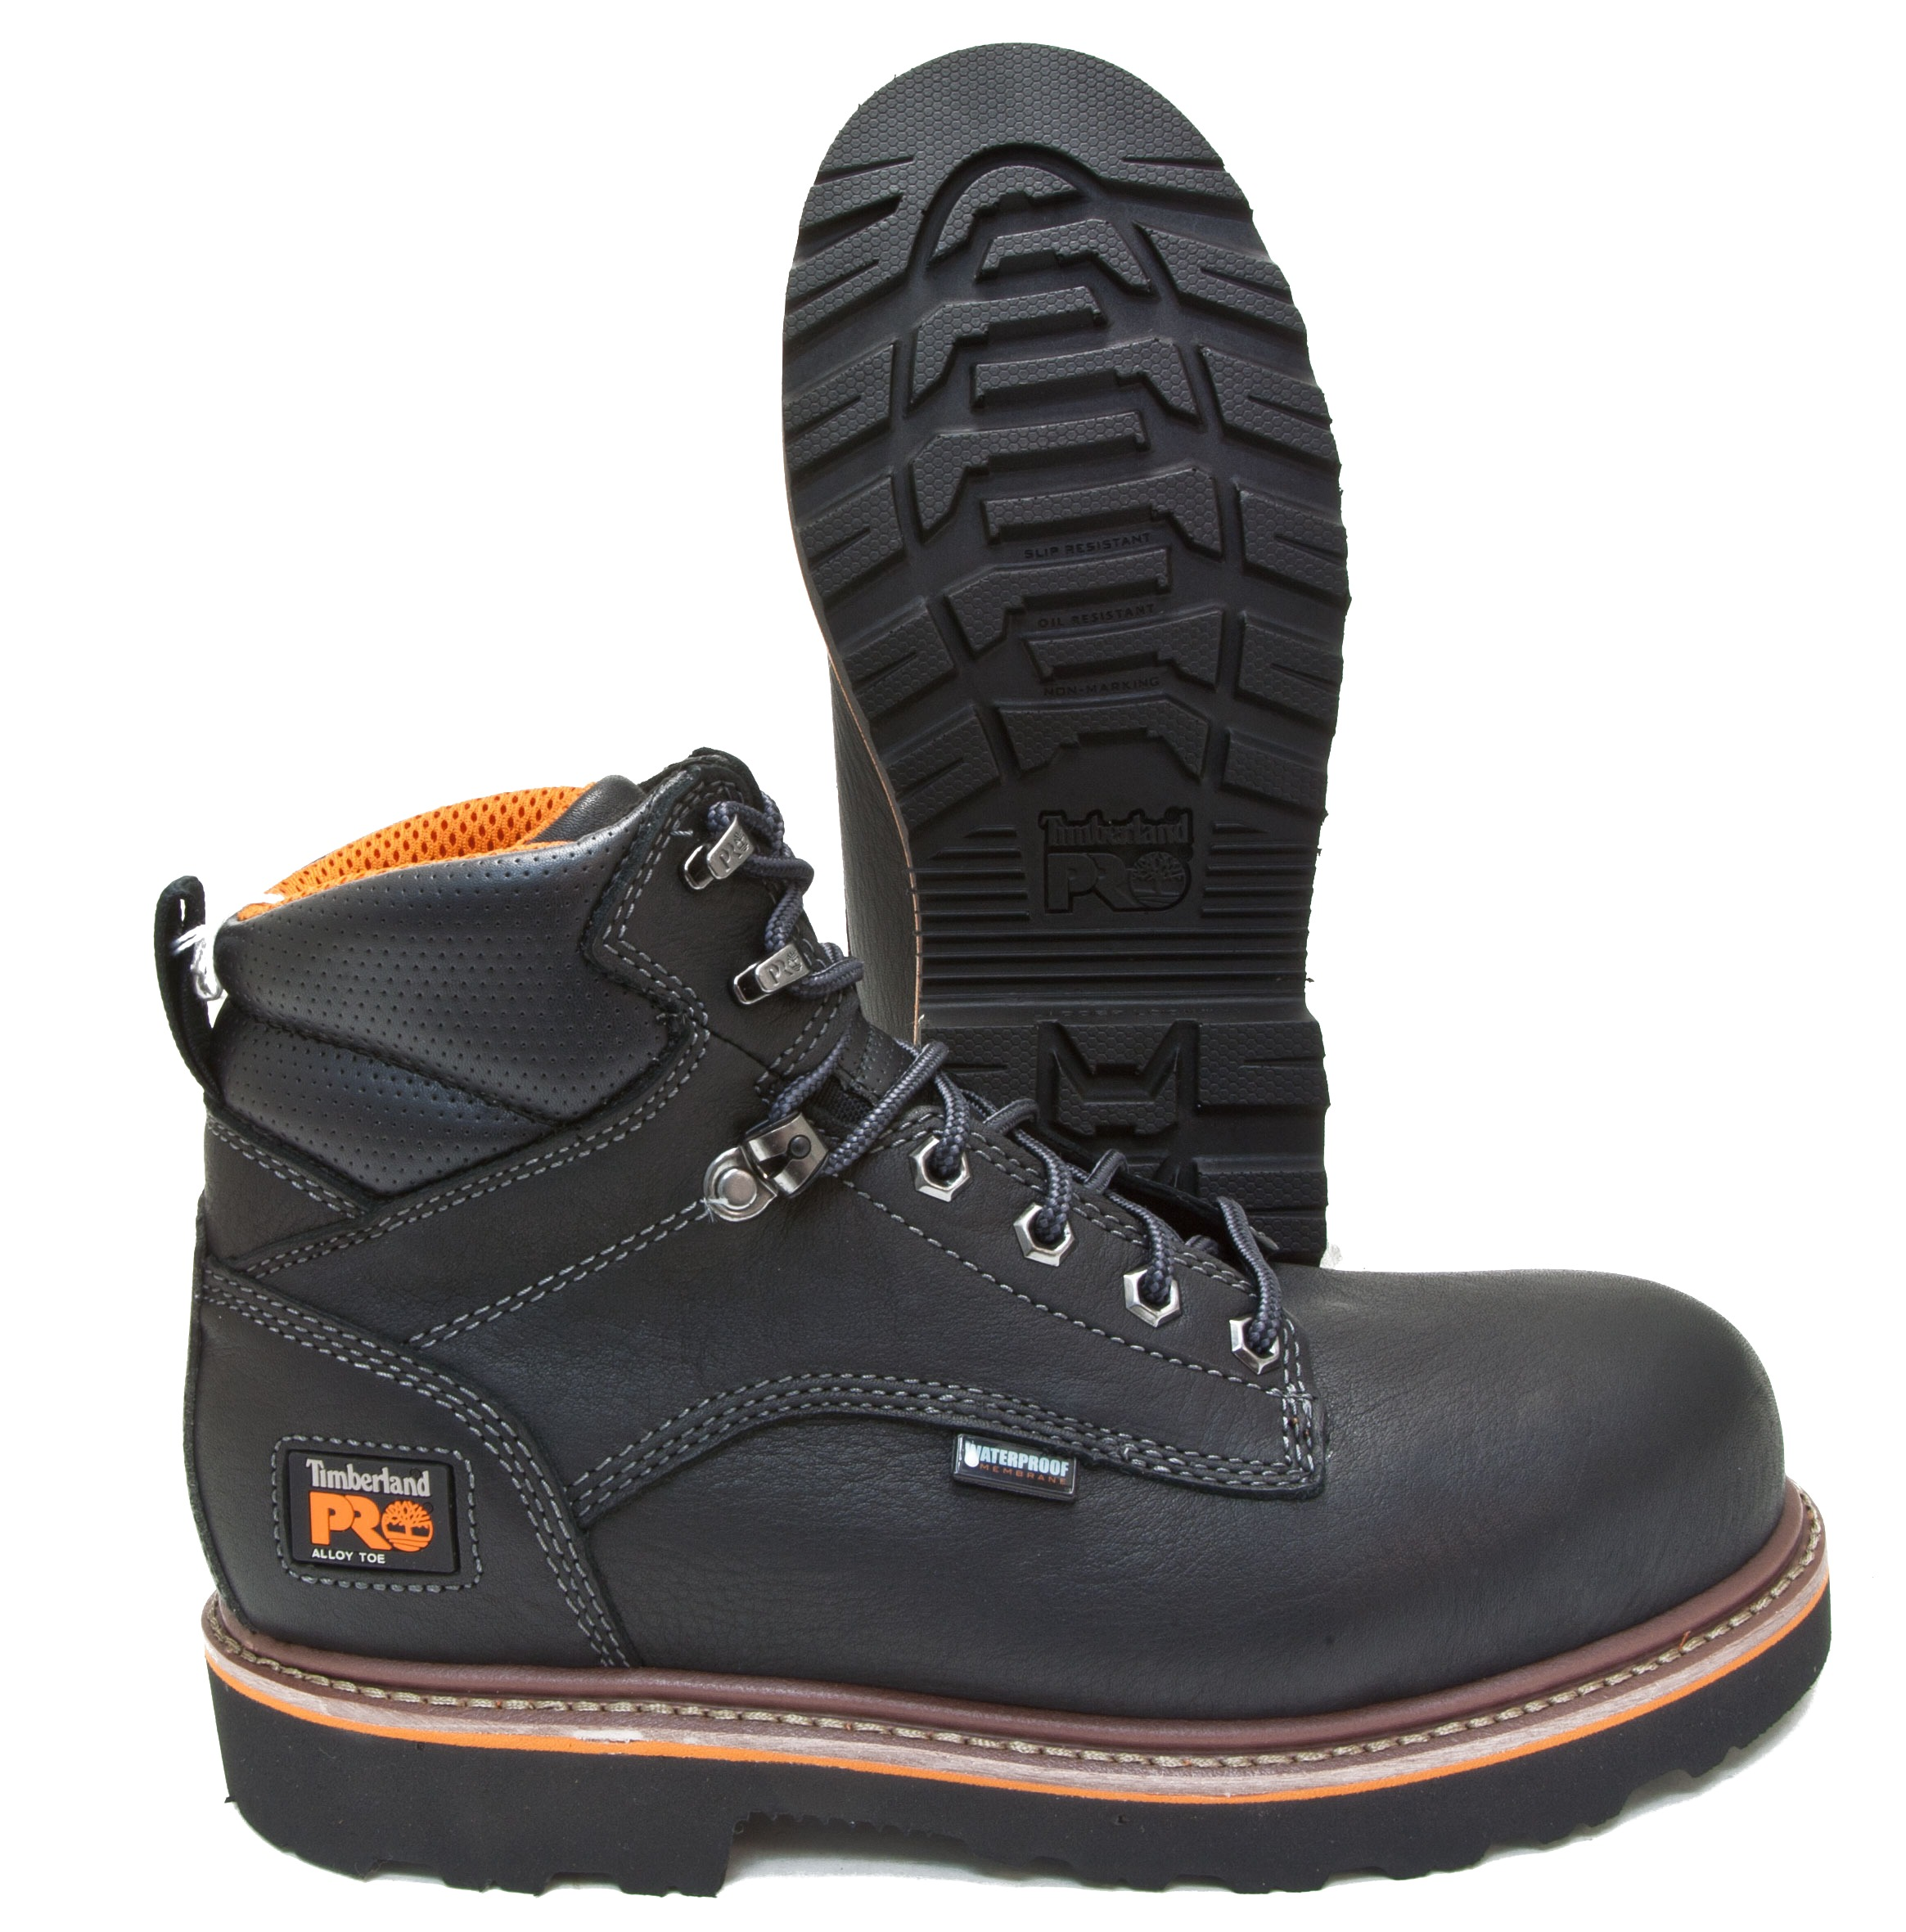 timberland pro ascender black leather waterproof alloy toe